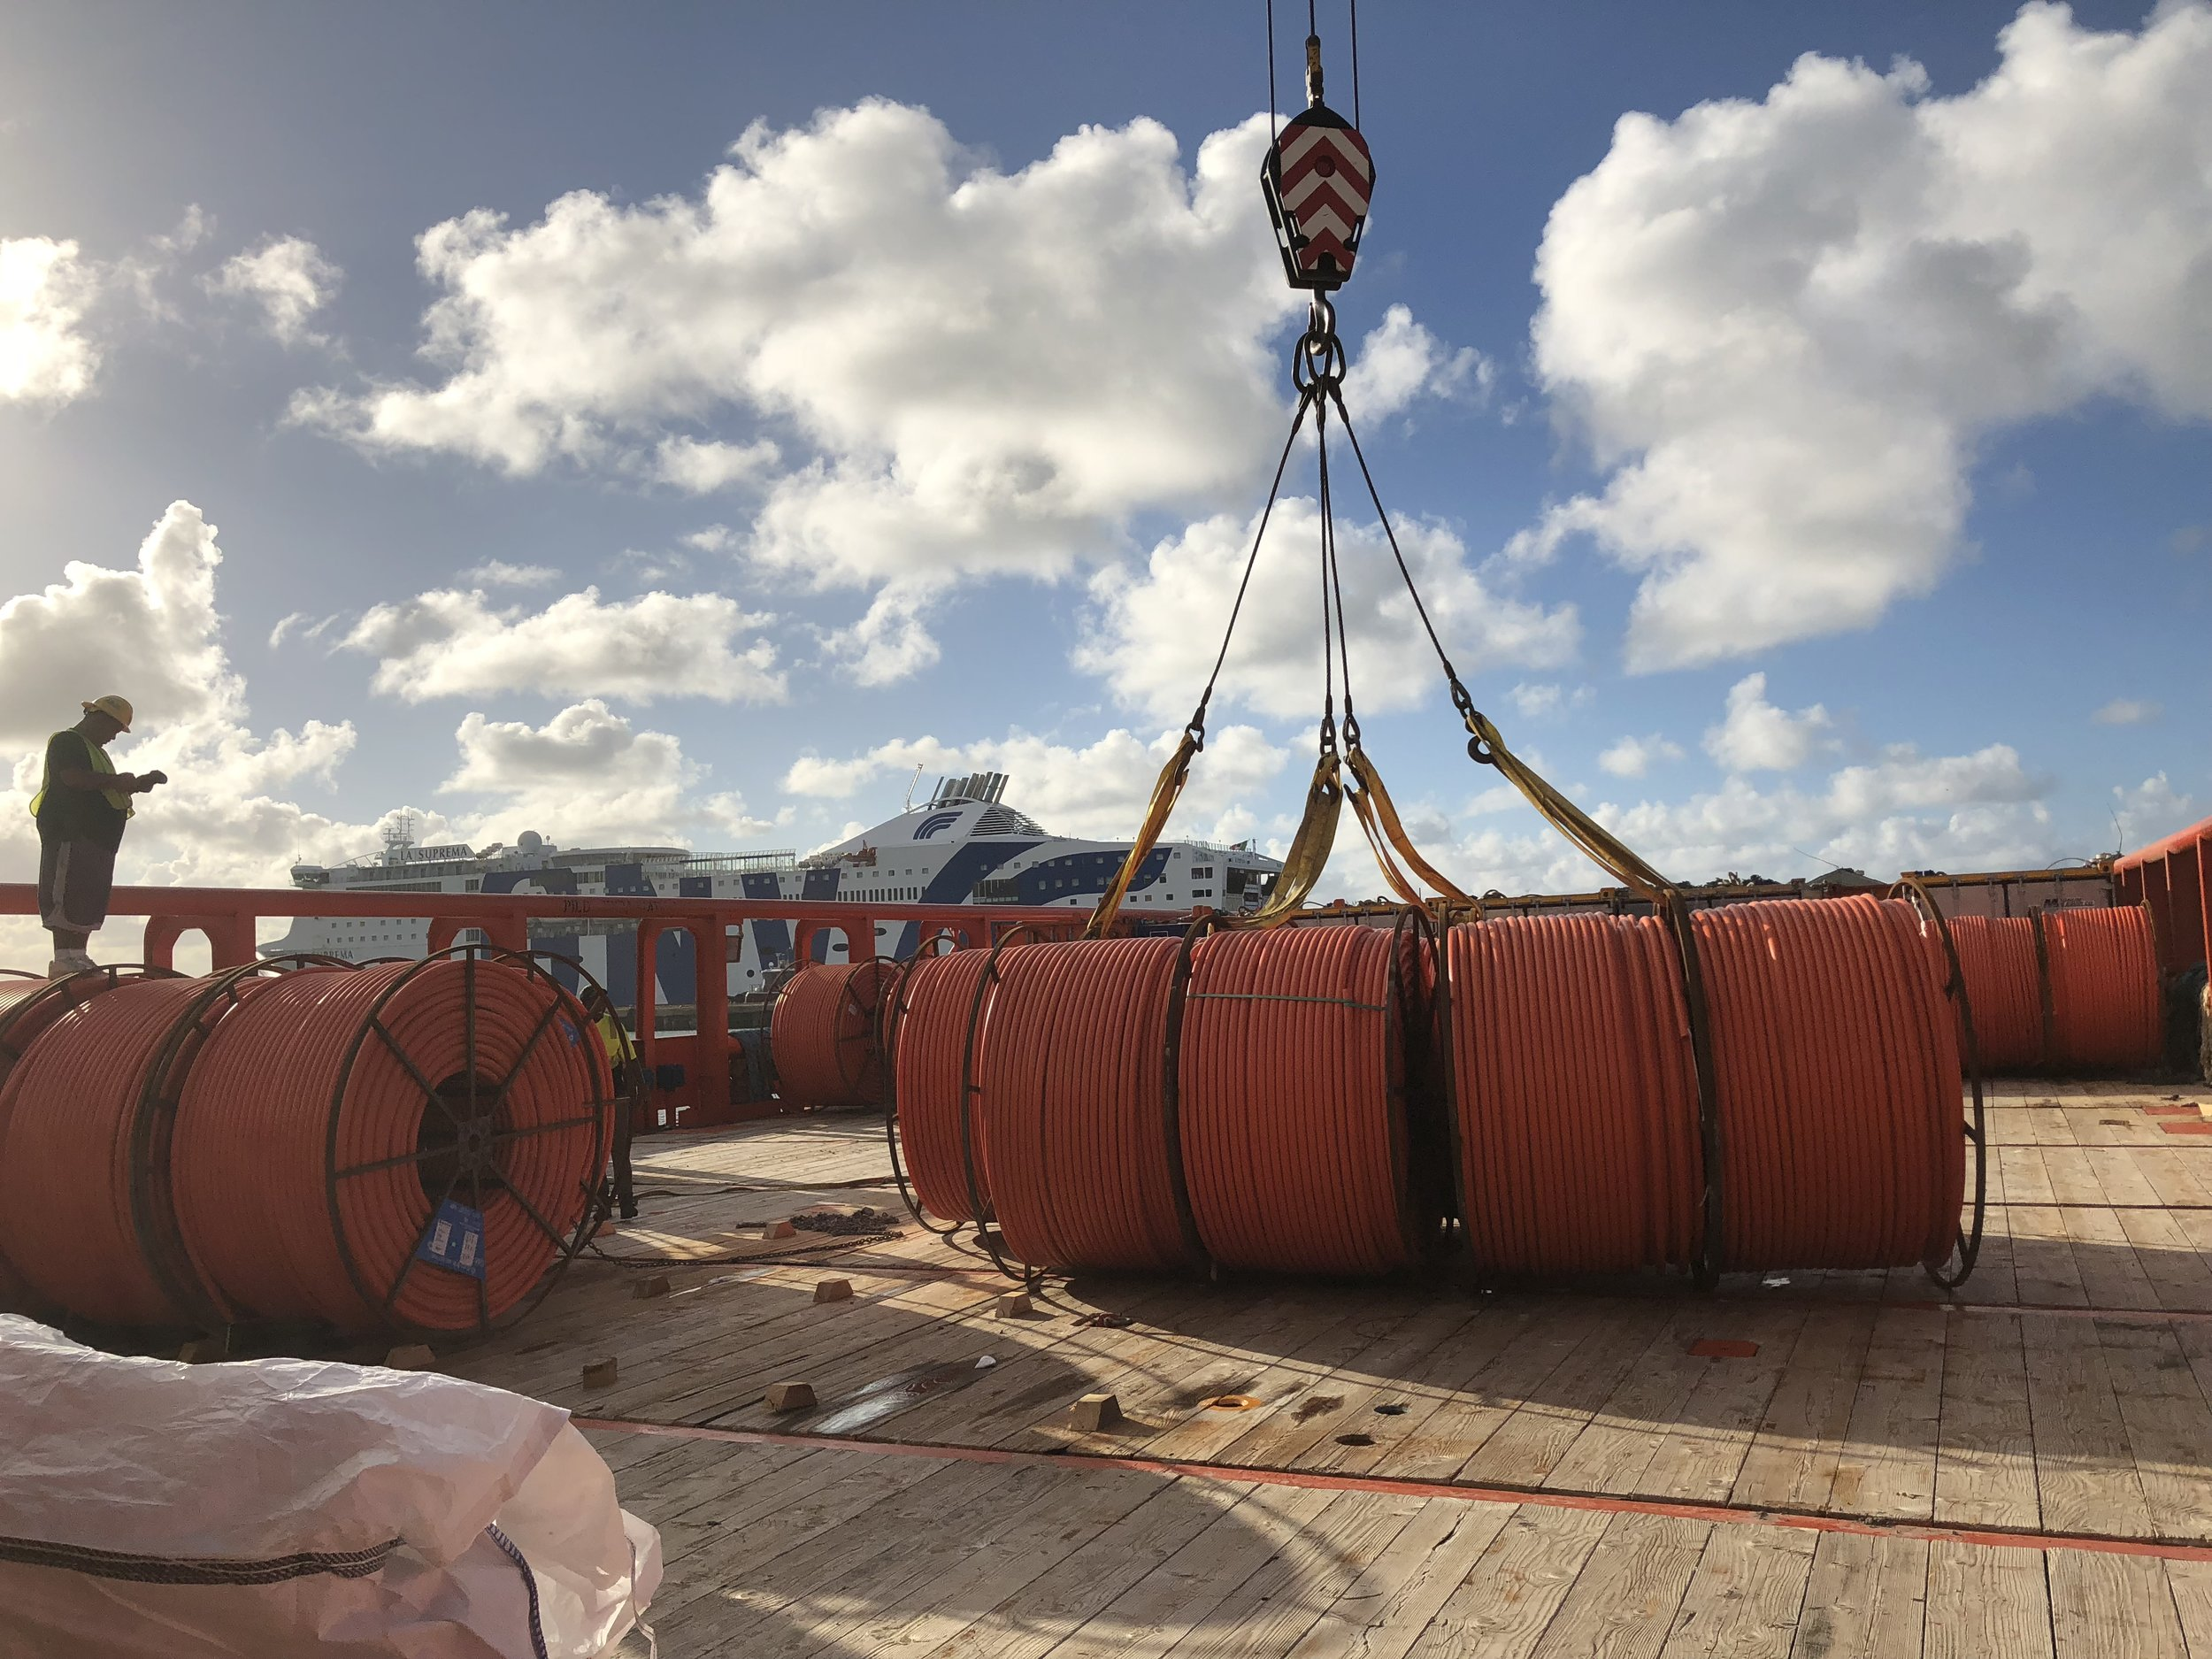 The large crane makes short work of the cargo easily lifting several reels at a time.